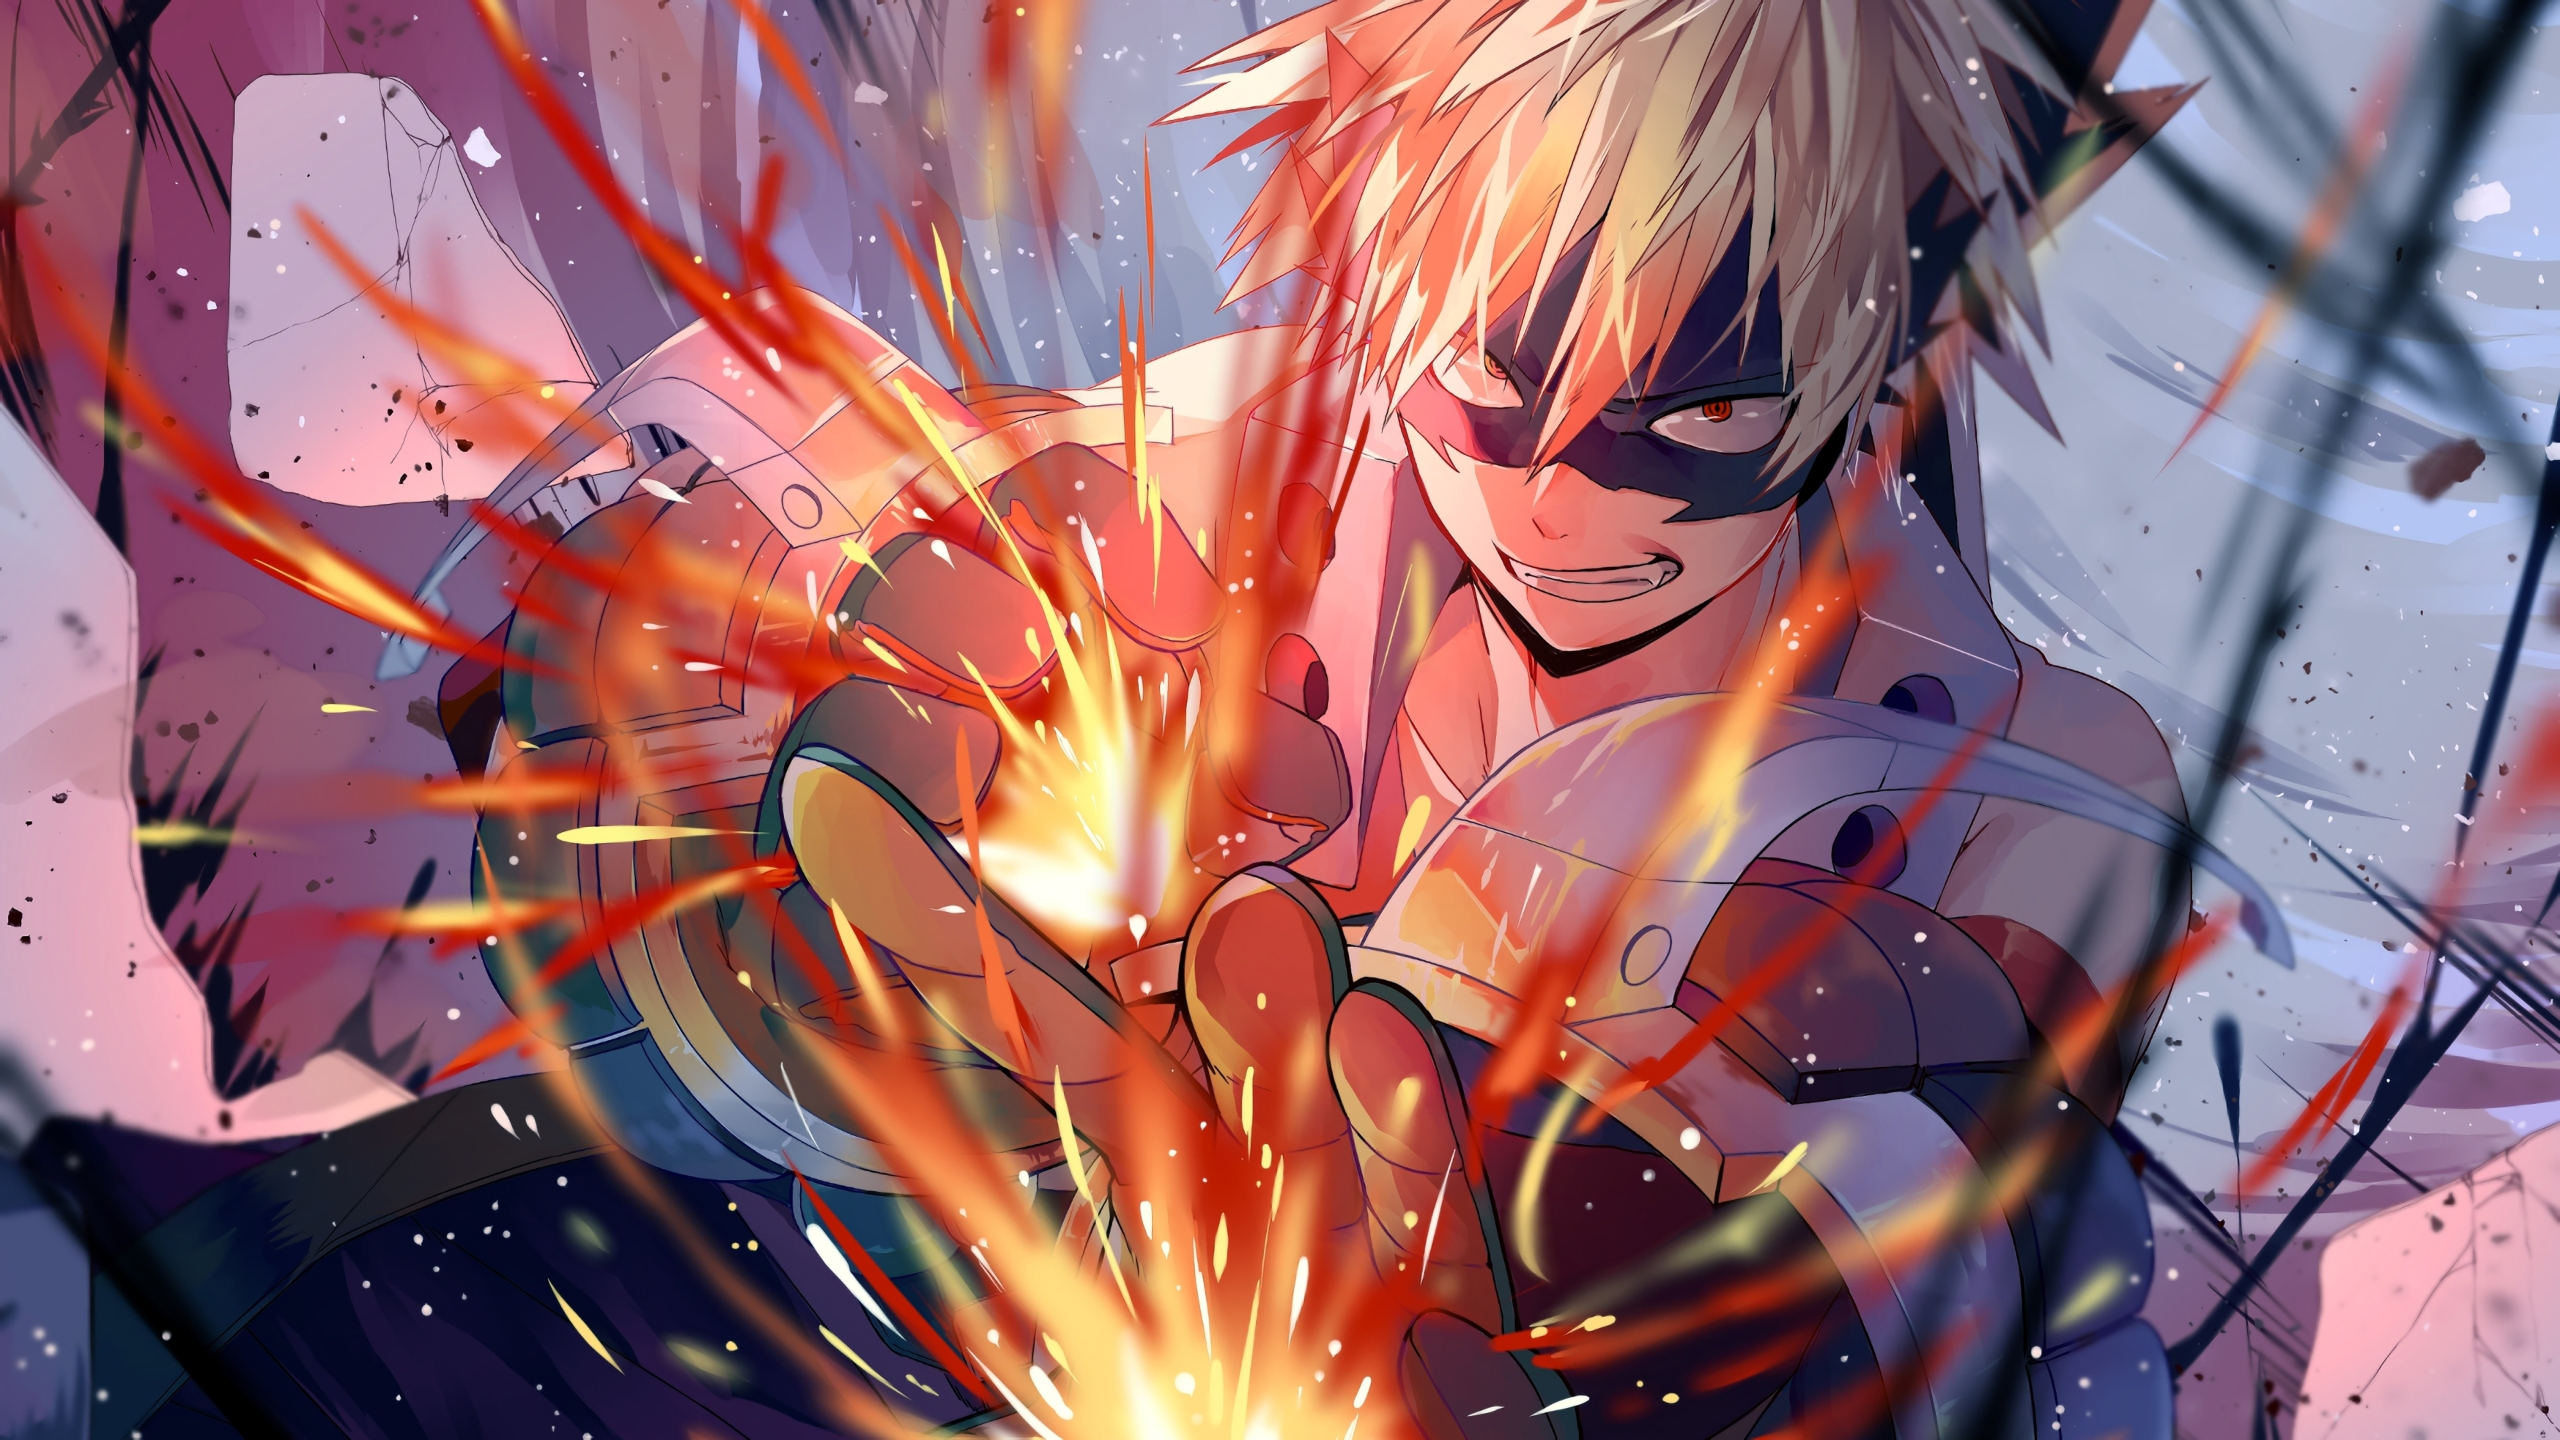 A Simple Guide to Download Full Size Bakugou Wallpaper